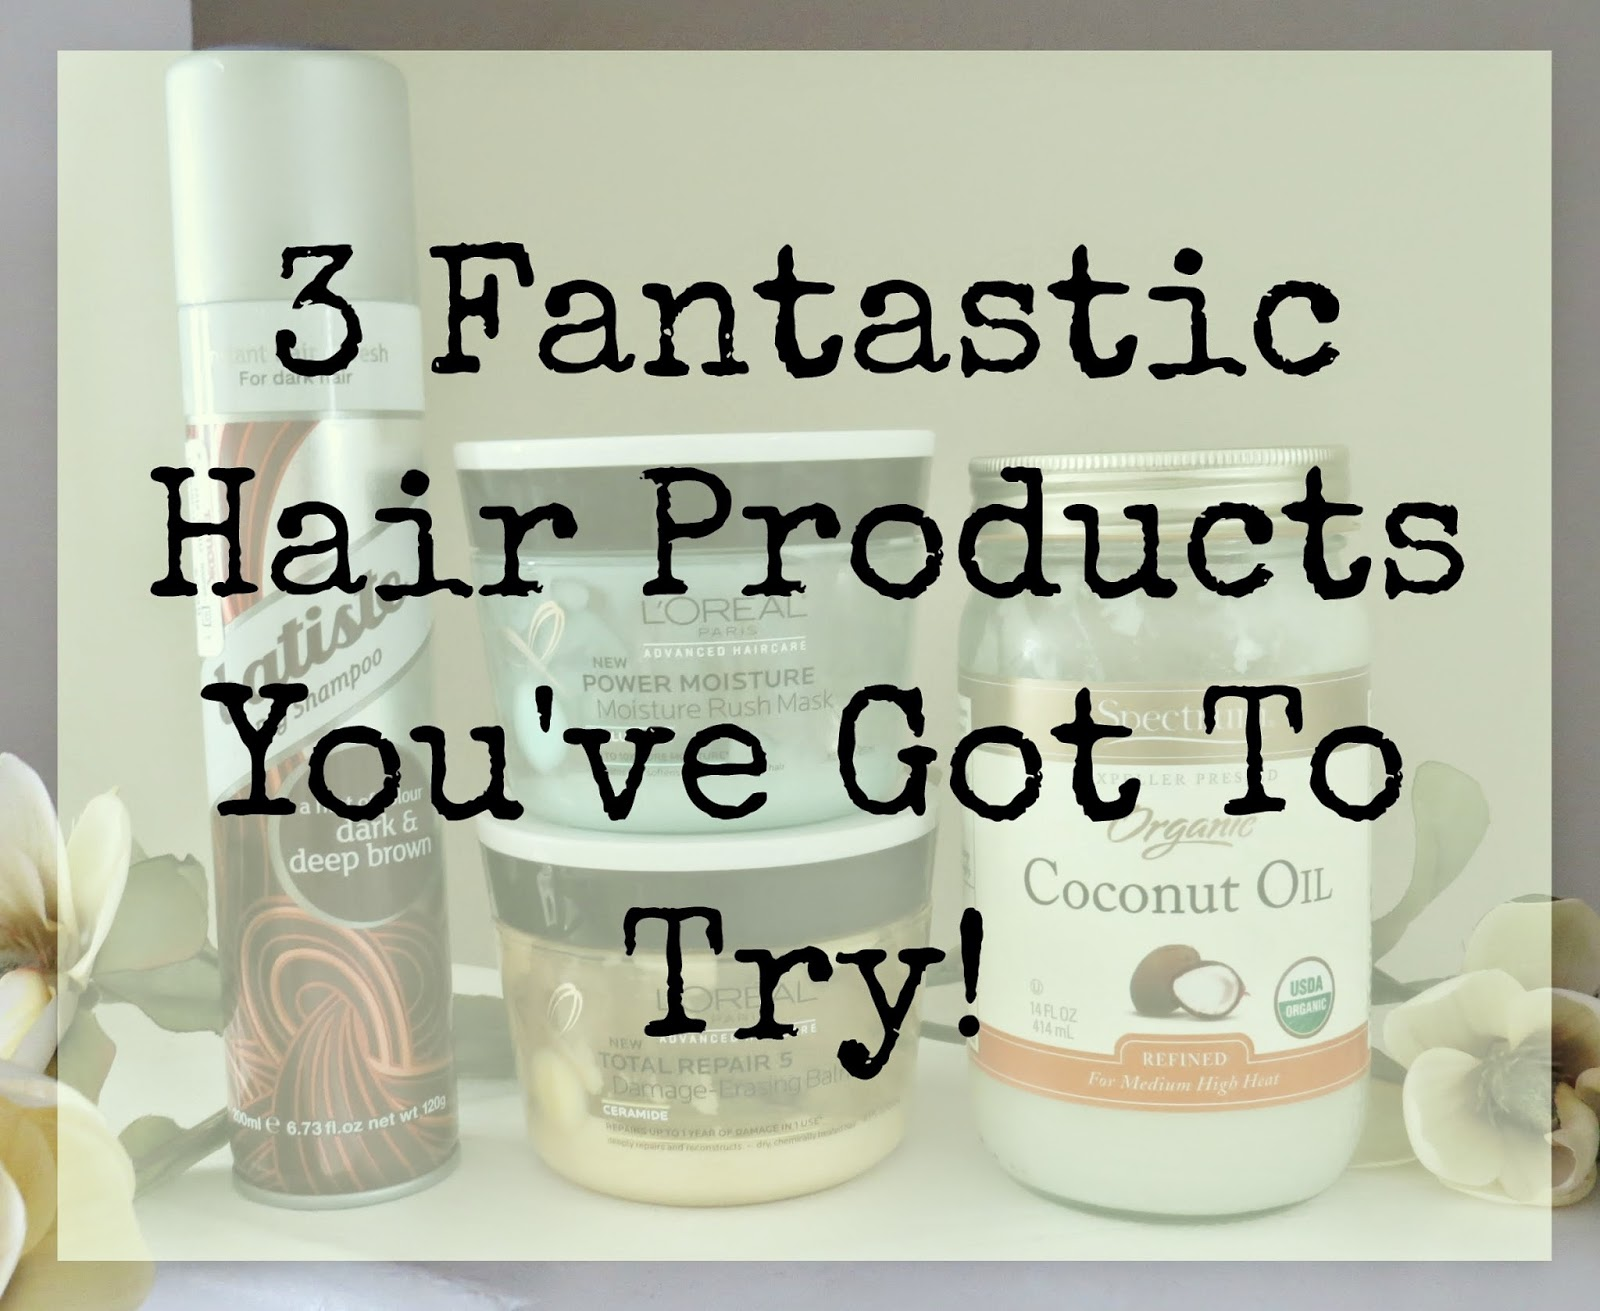 3 Fantastic Hair Products You've Got To Try!